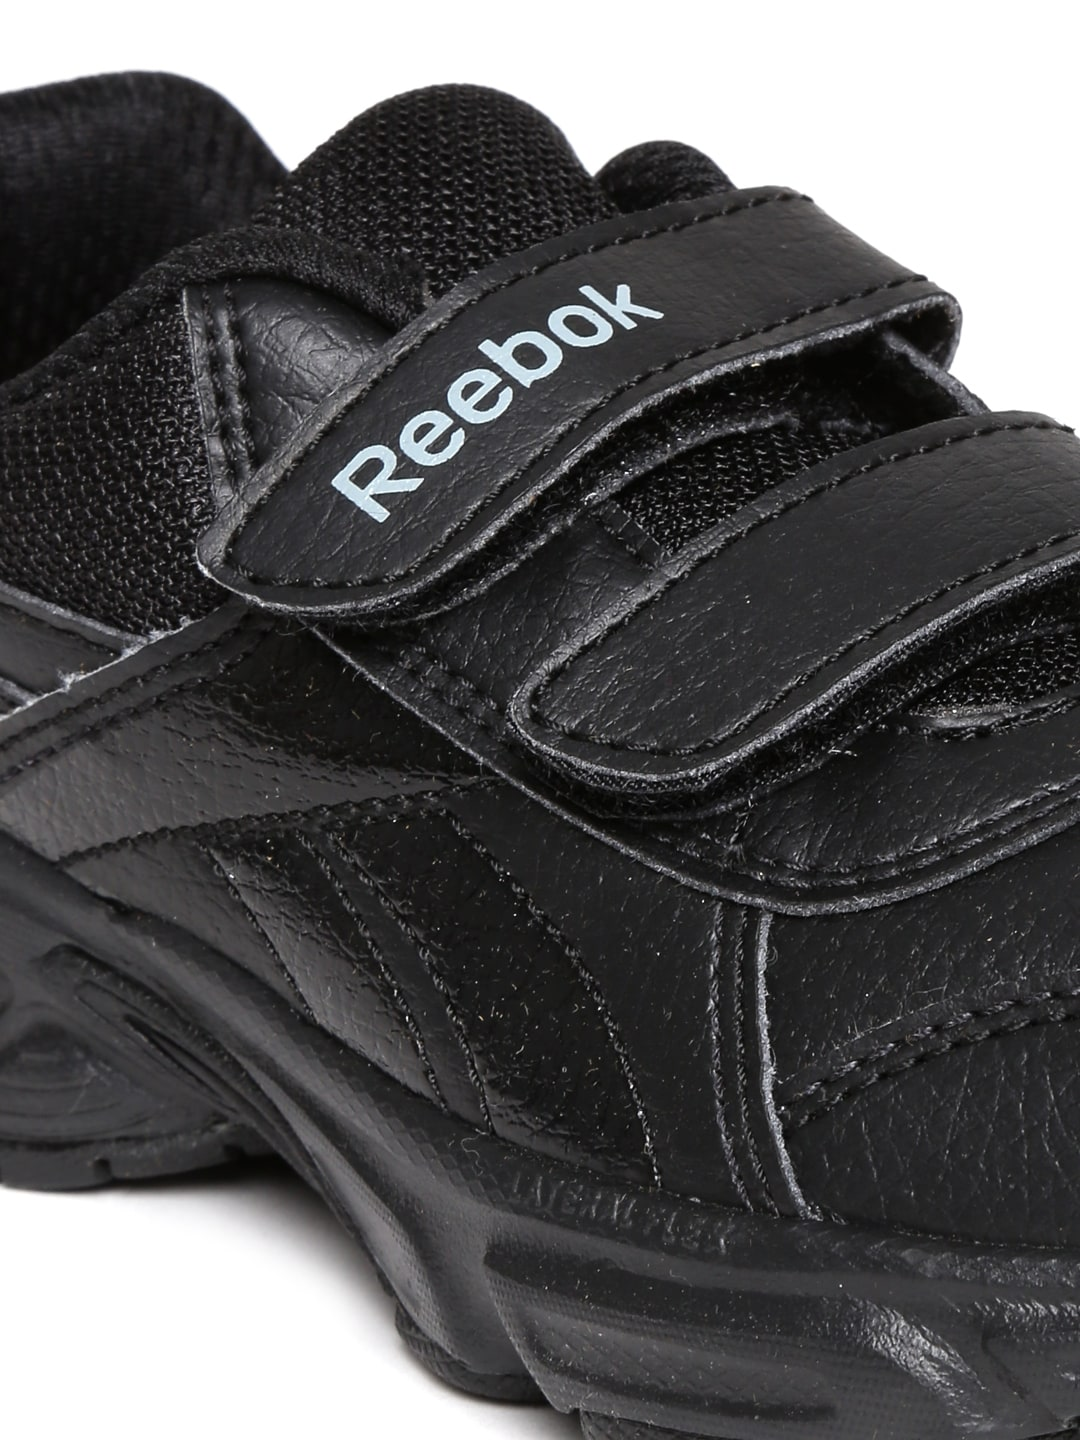 Reebok Online Velcro grootste Off53 catalogus Cheap Shoes School De frRxPf